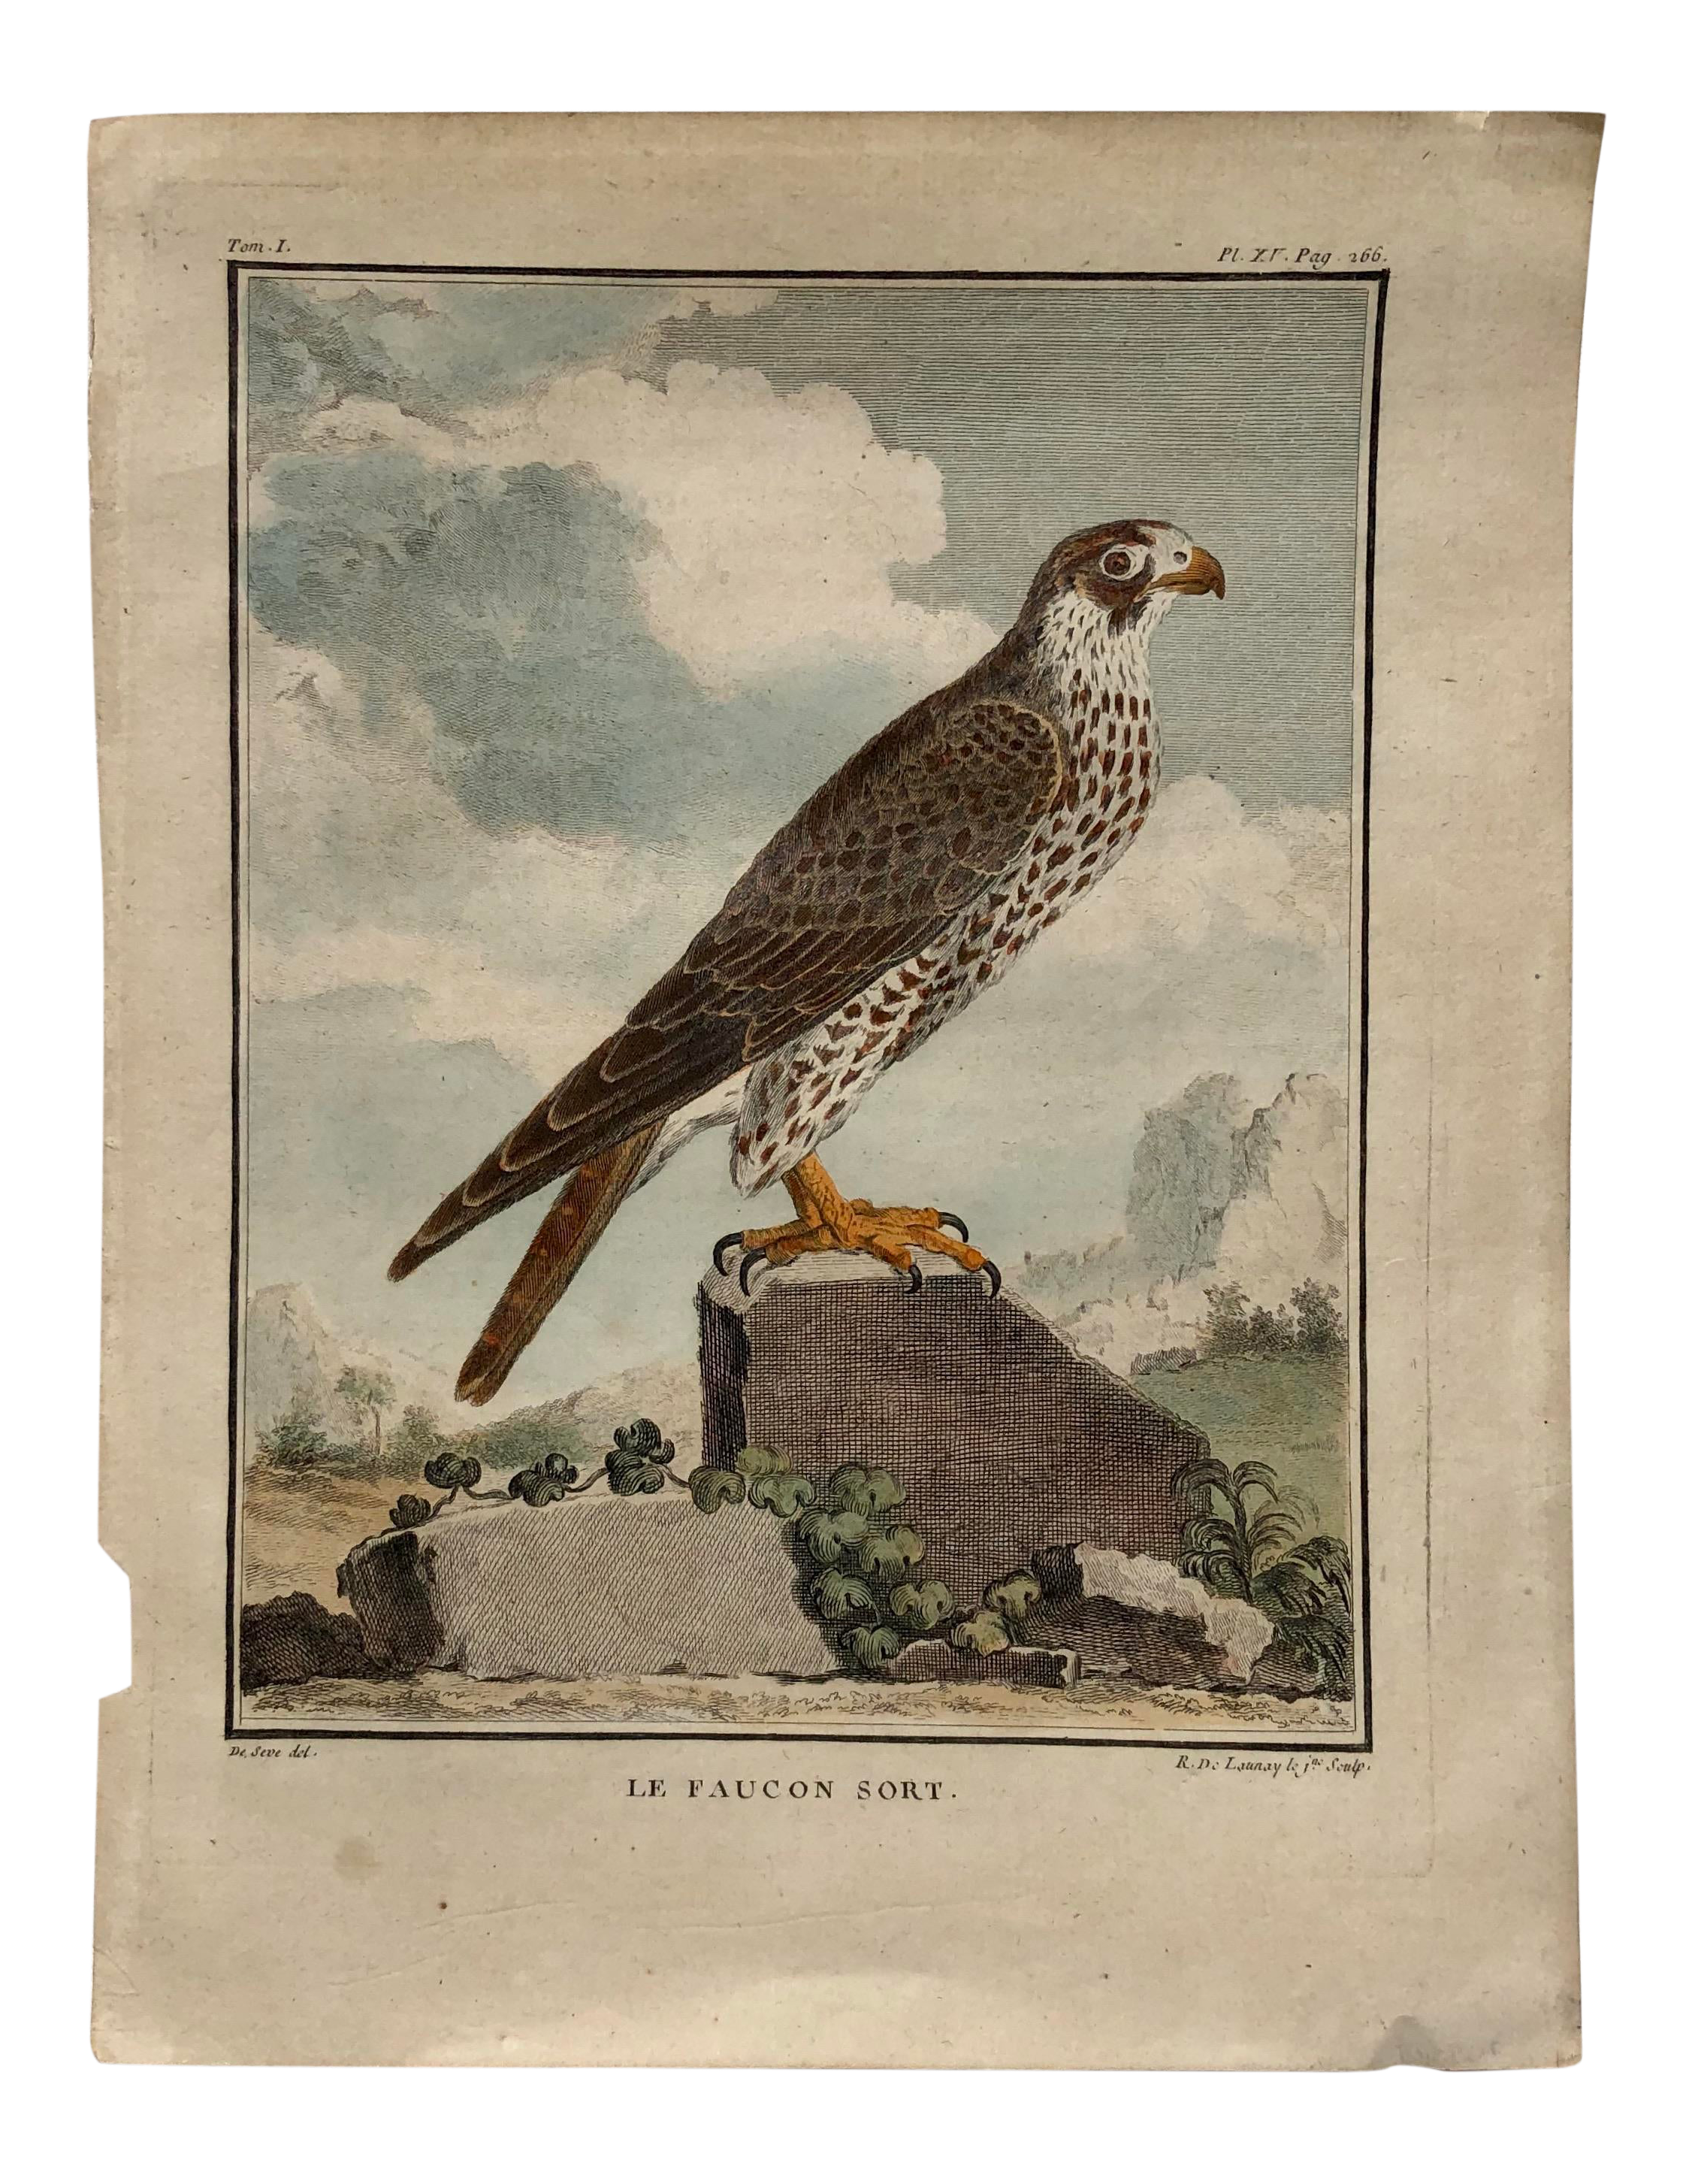 18th Century French Bird Engraving Signed By Jacques De Seve Featuring A Falcon Chairish